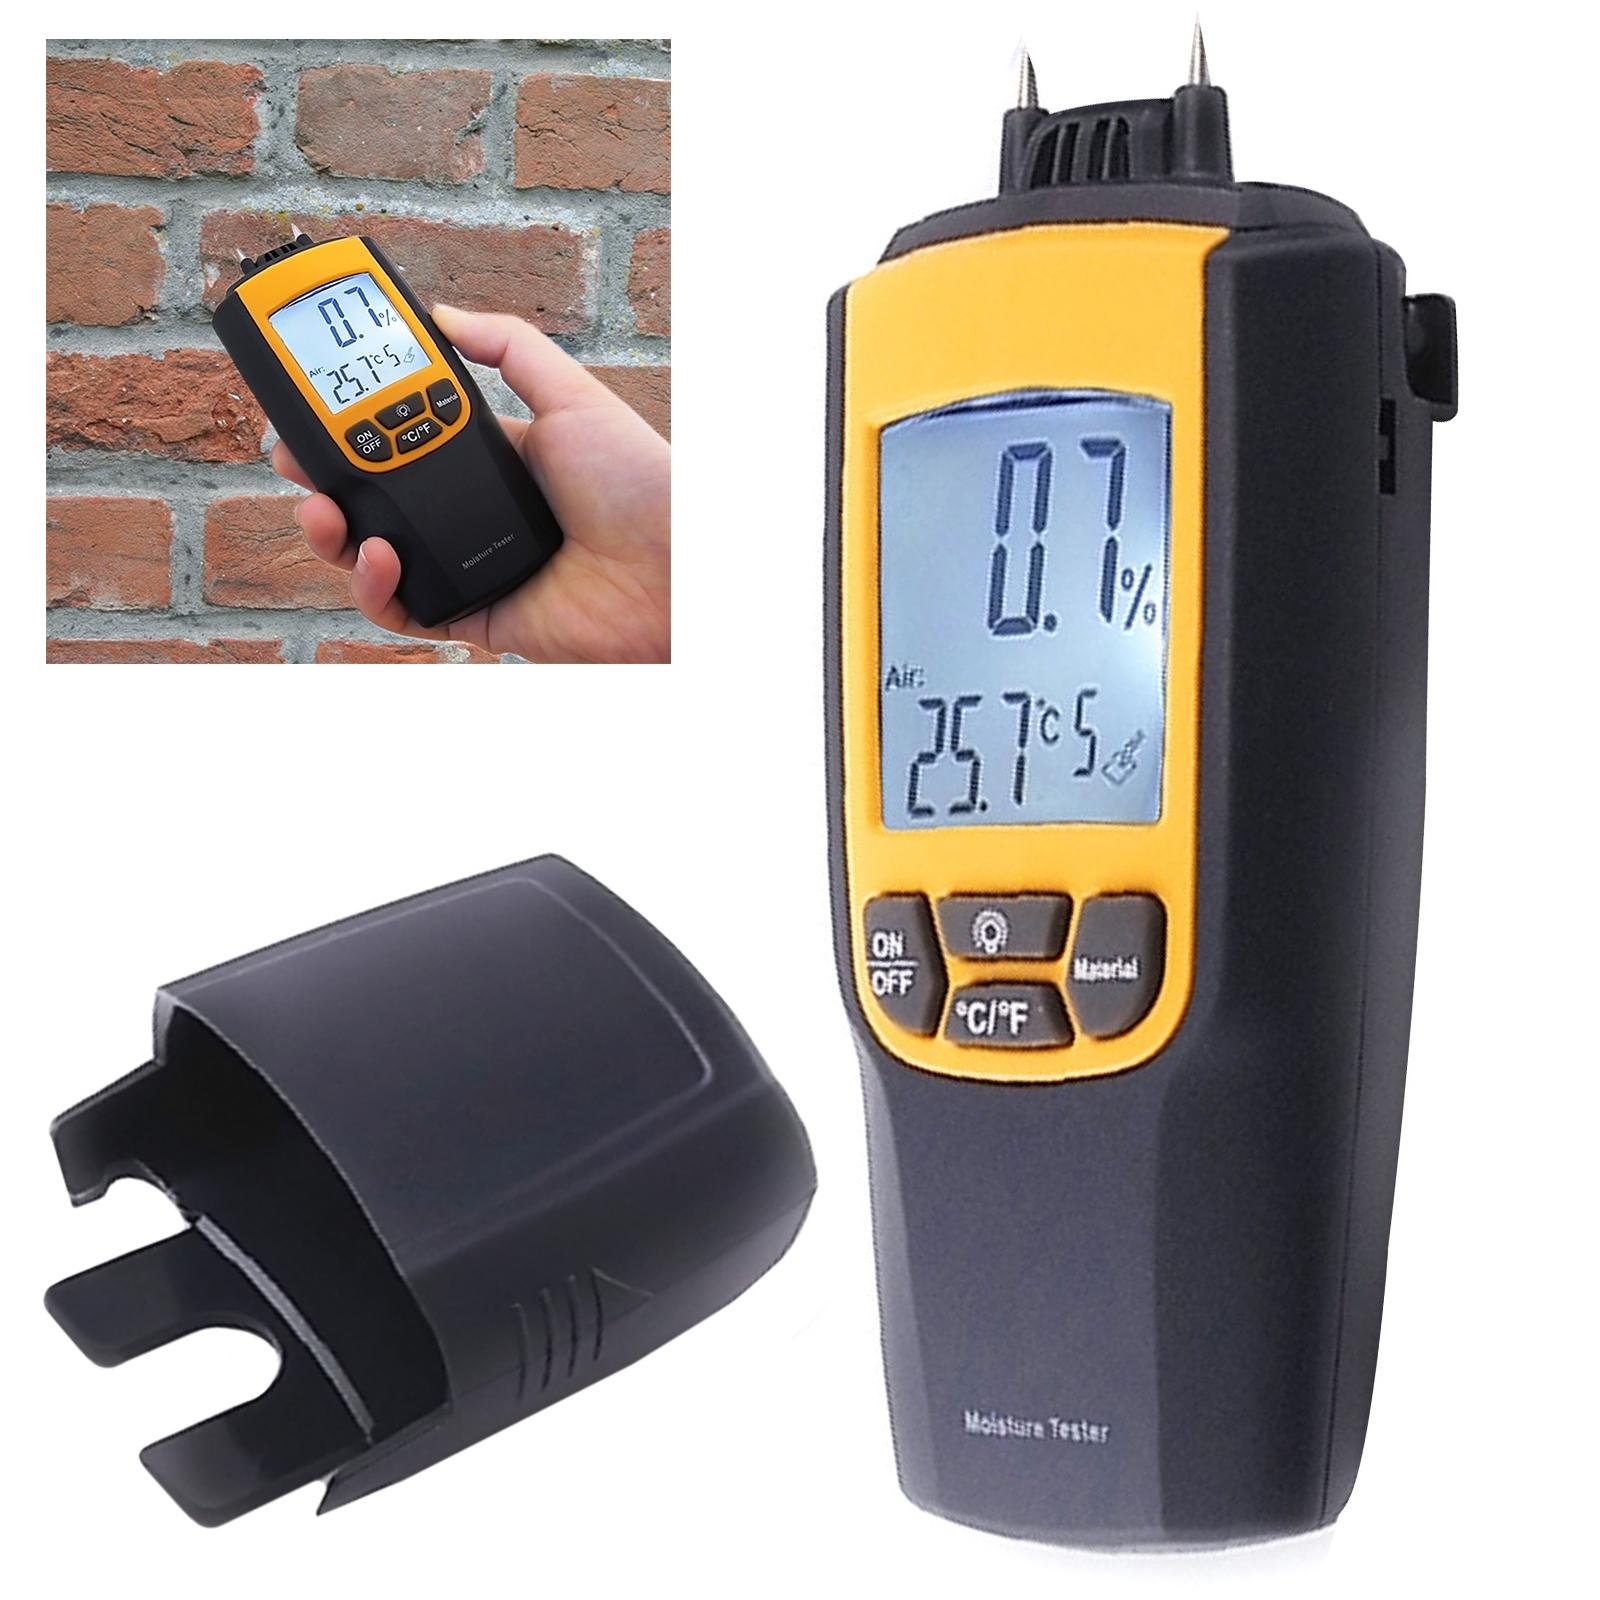 VA-8040 Gain Express Moisture & Temperature Meter Wood Bricks Concrete Cement Lime Mortar °C °F CE Marking Dual Meter Tester - Intl